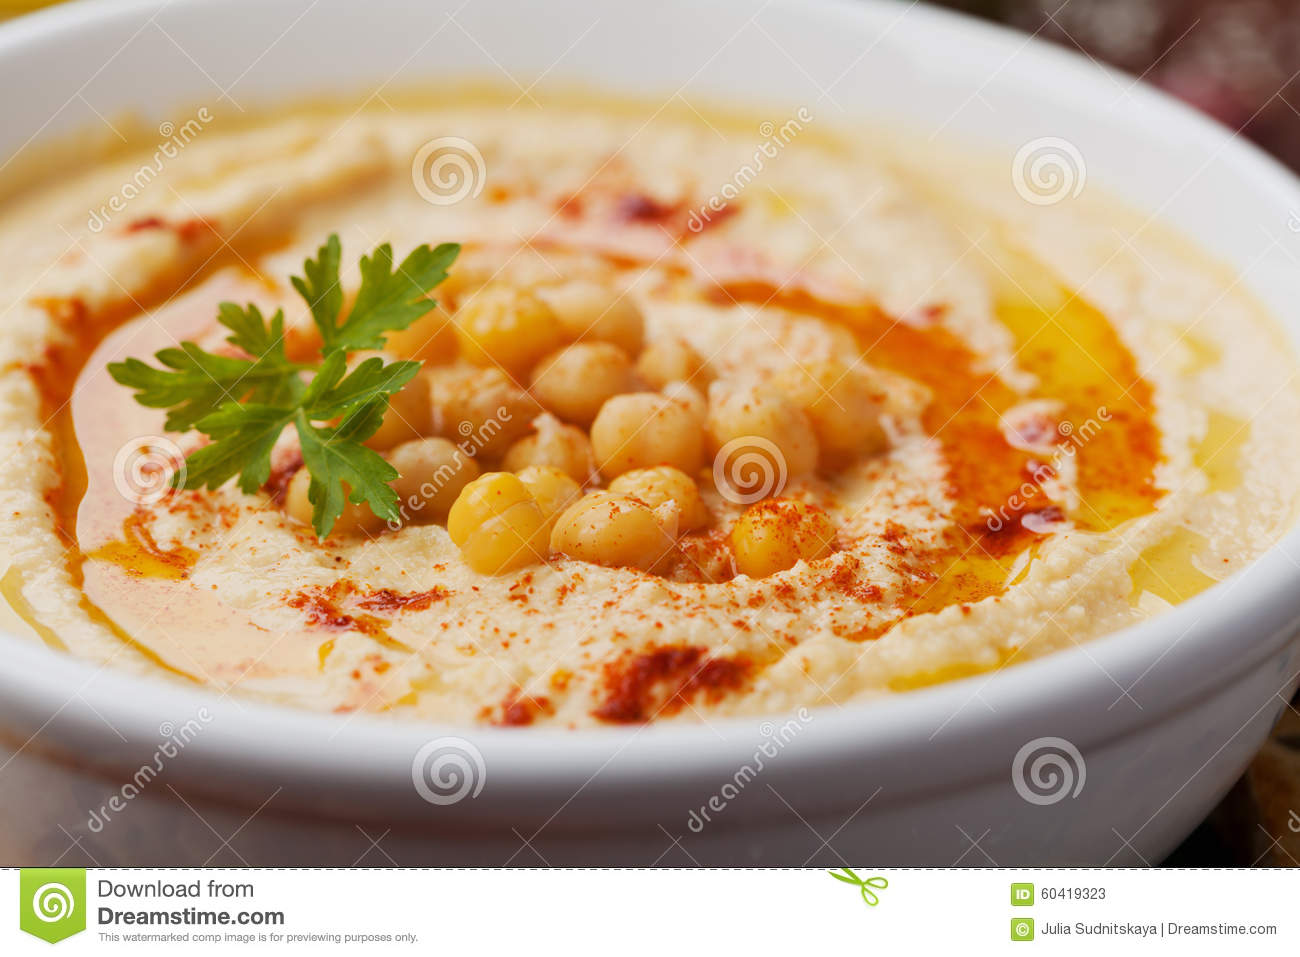 Hummus Or Houmous, Appetizer Made Of Mashed Chickpeas ...